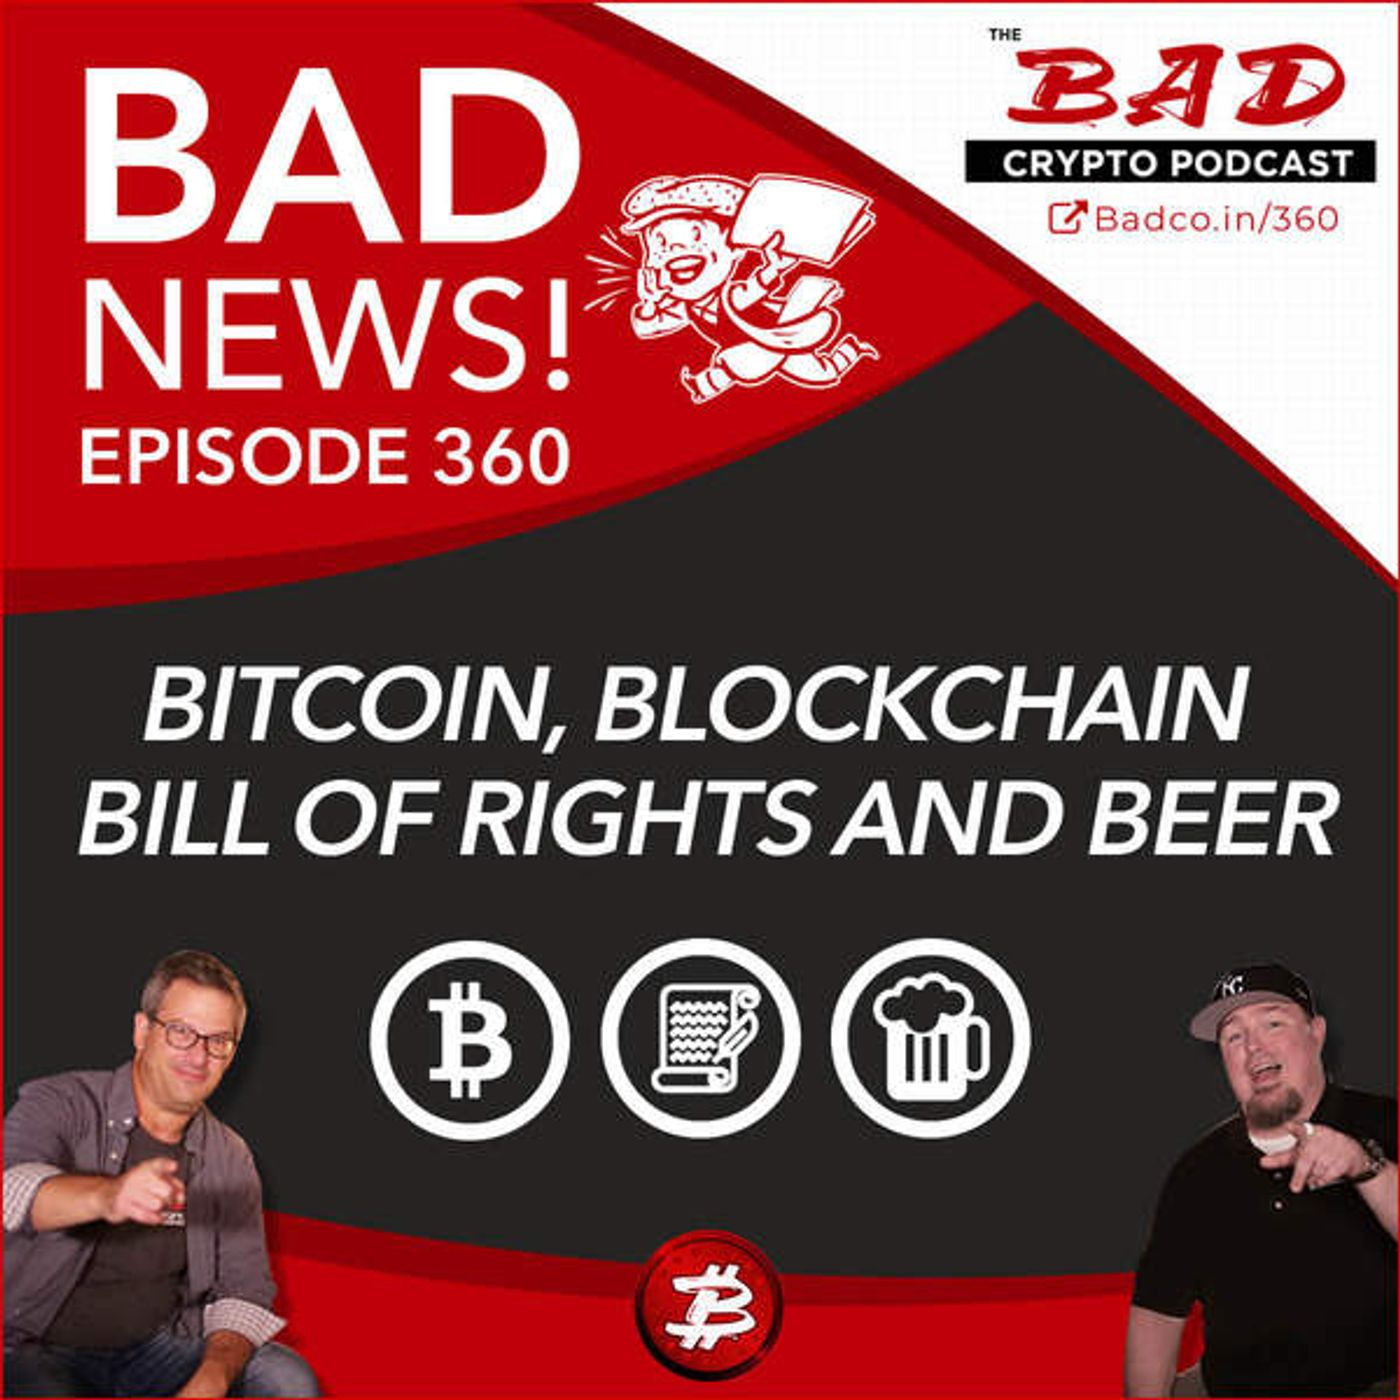 Heartland Newsfeed Podcast Network: The Bad Crypto Podcast (Bitcoin, Blockchain Bill of Rights and Beer - Bad News for 1/23/2020)